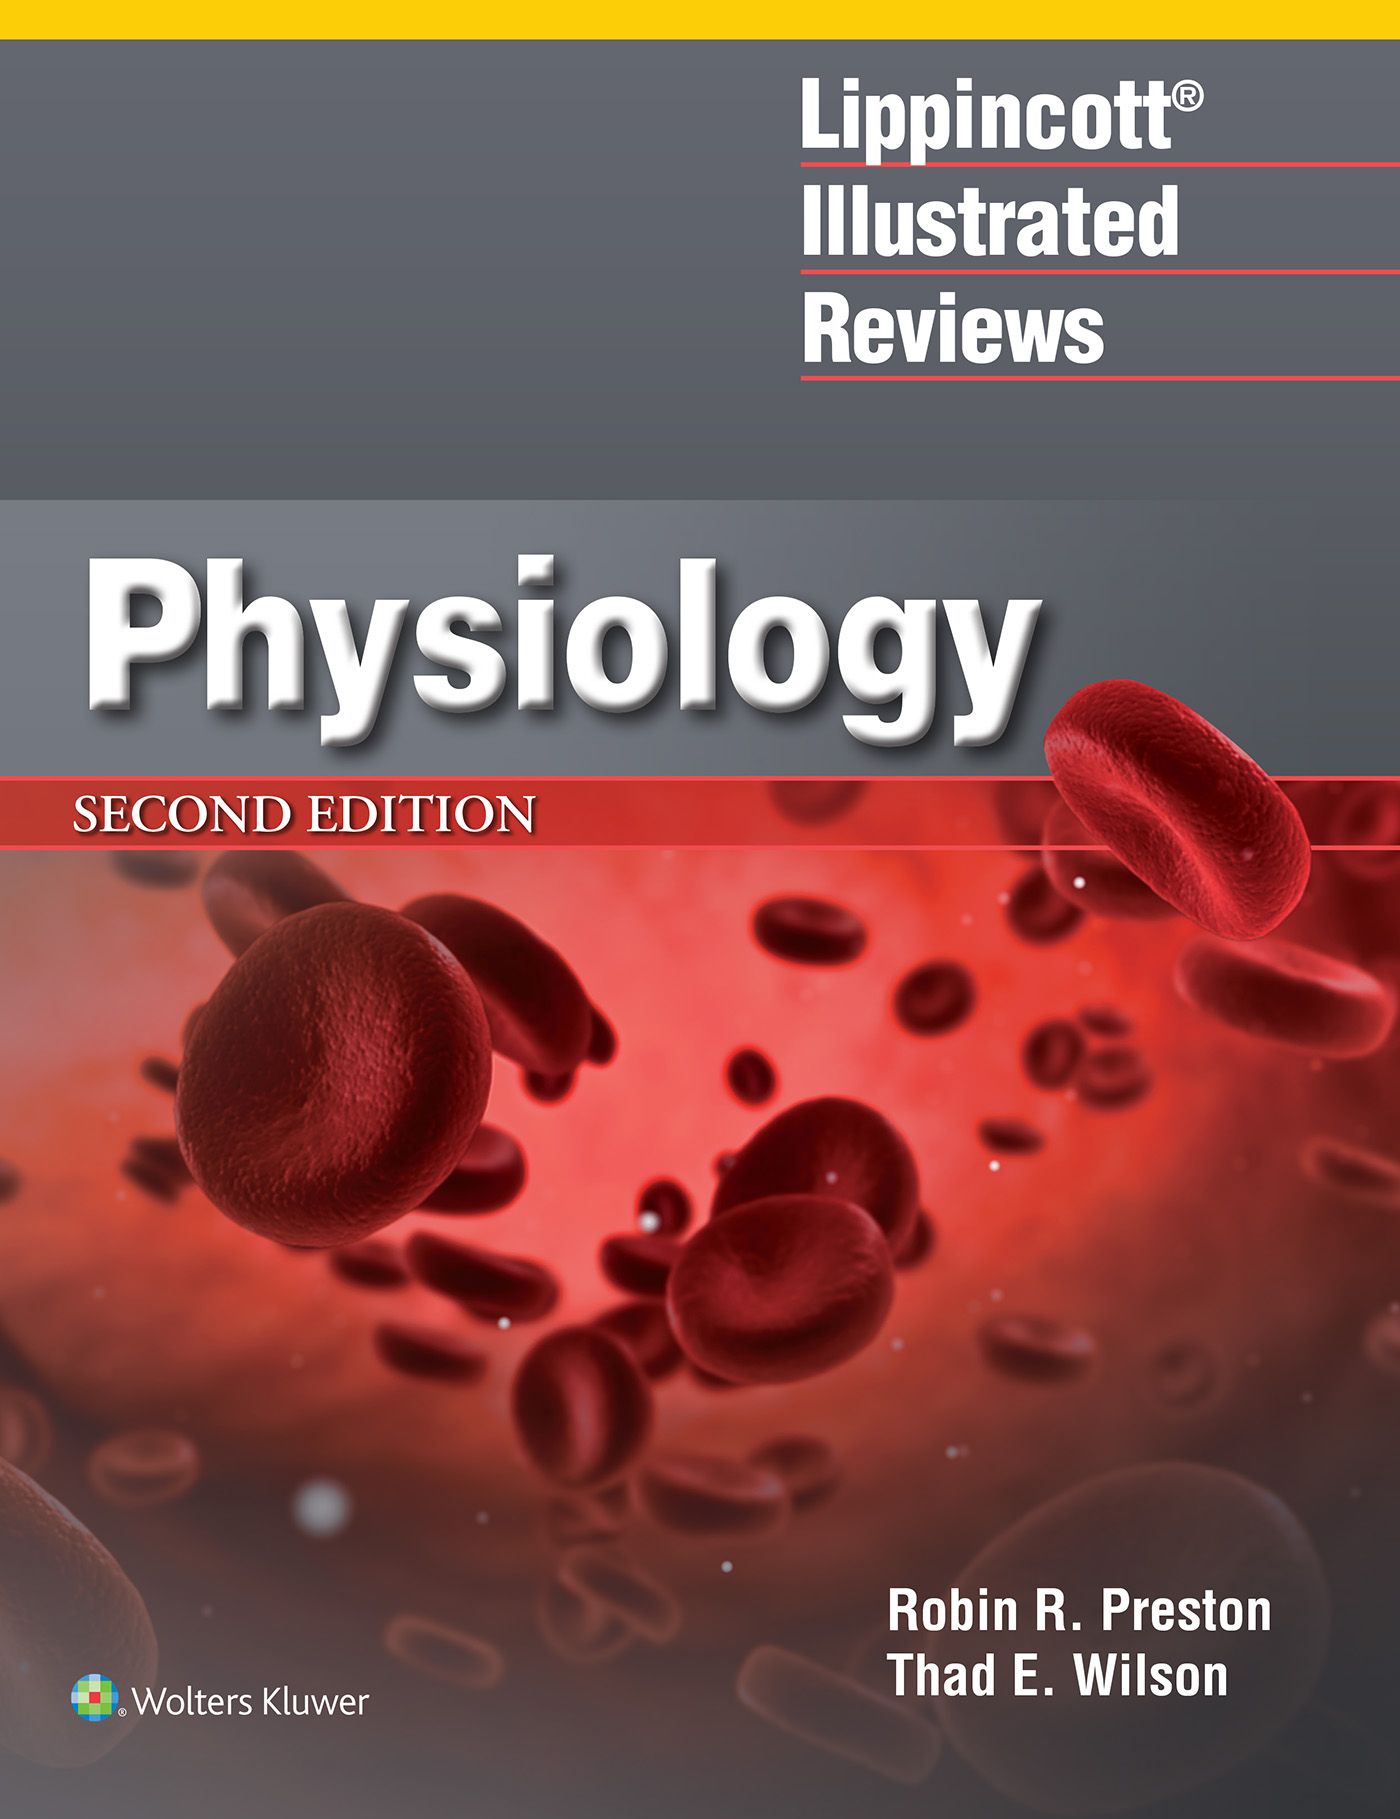 Lippincott® Illustrated Reviews: Physiology